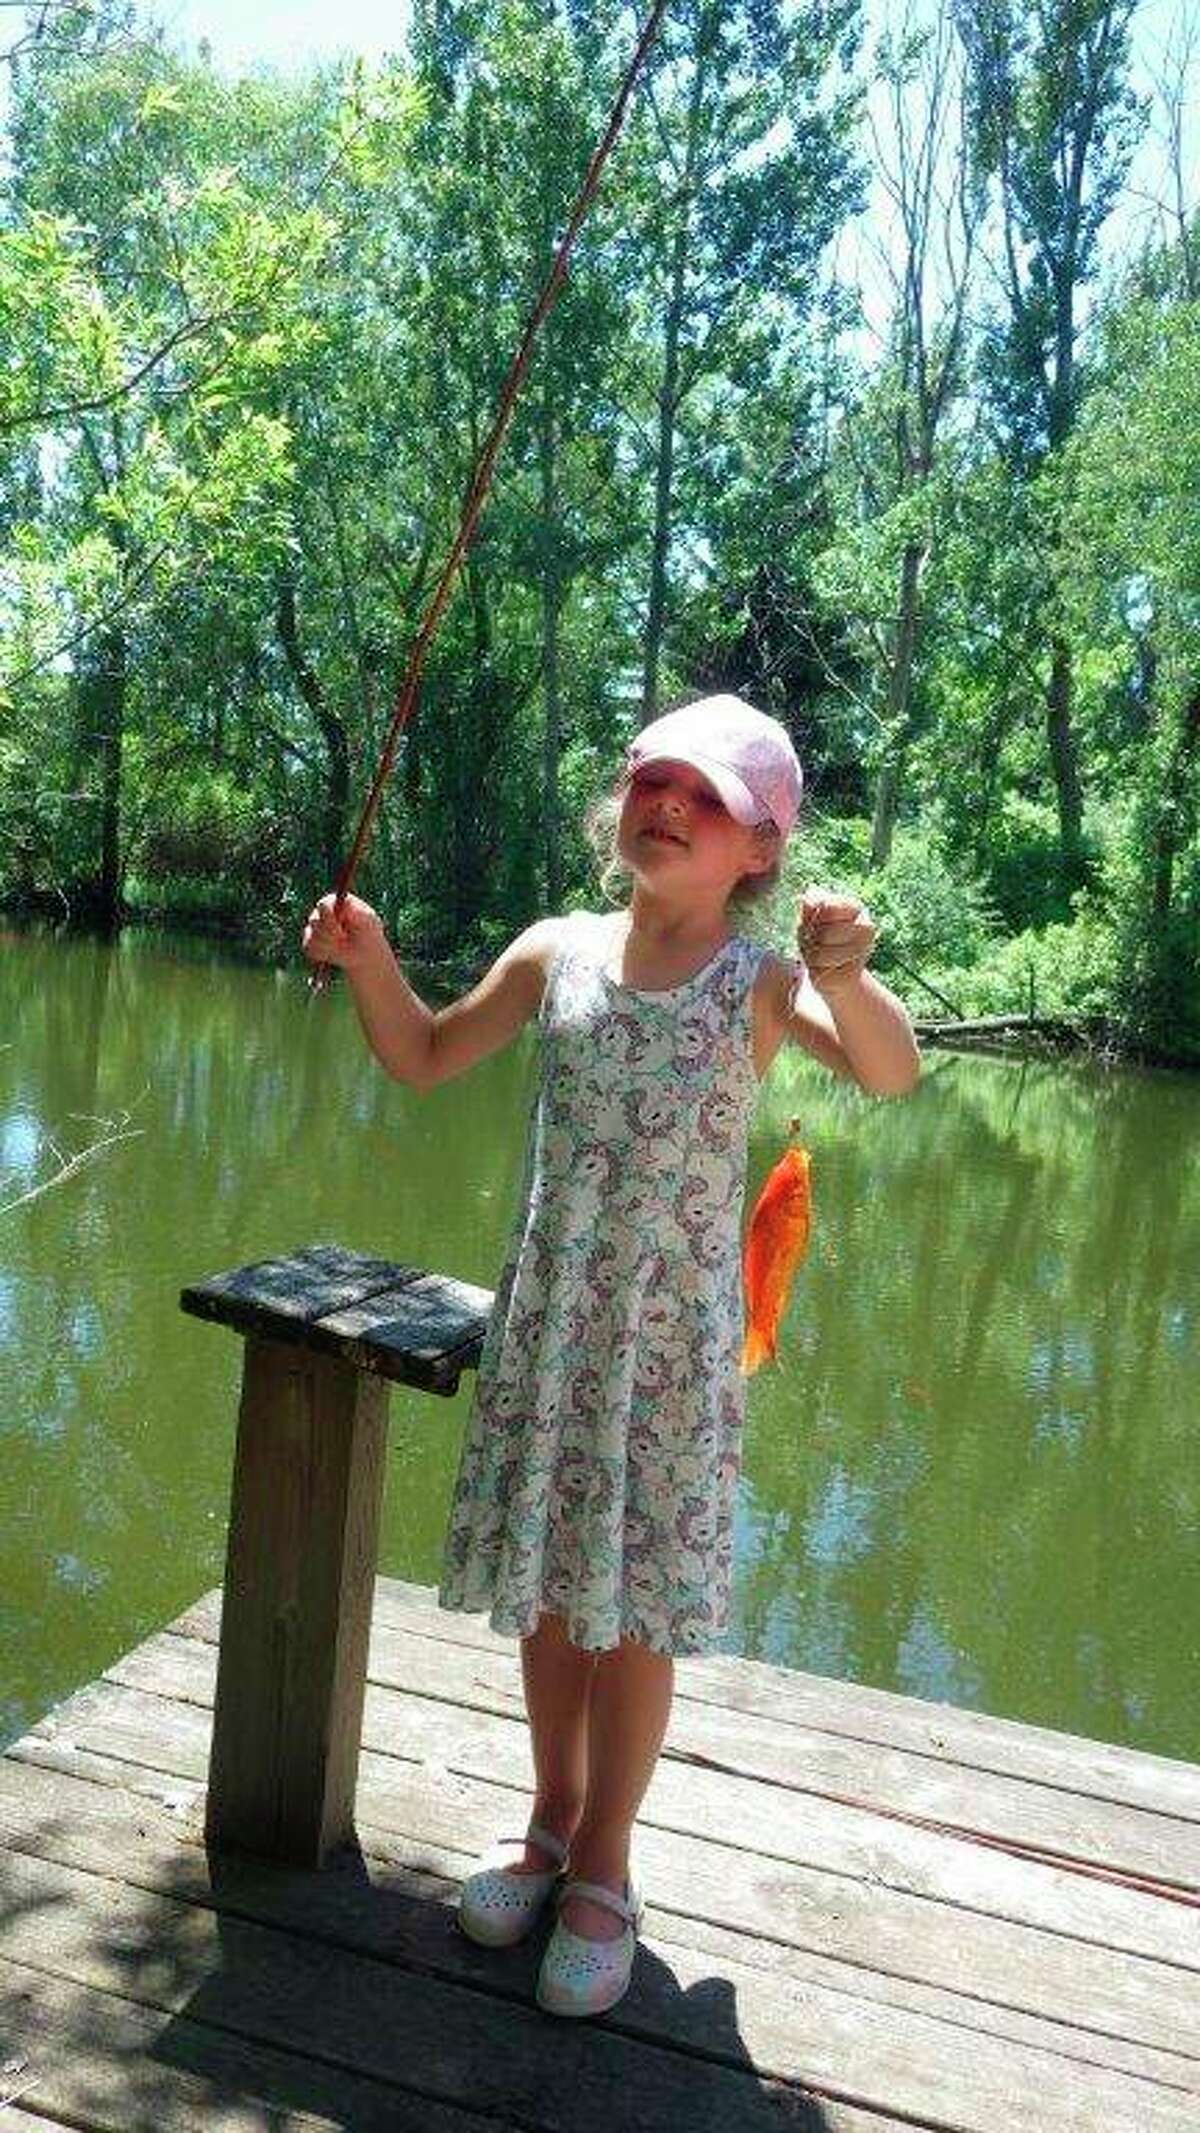 RosaMae Lounsbury, 7 years old in this photo, thoroughly enjoys fishing with a cane pole inher grandparents' farm pond, where she hooked this trophy goldfish. (Tom Lounsbury/Hearst Michigan)